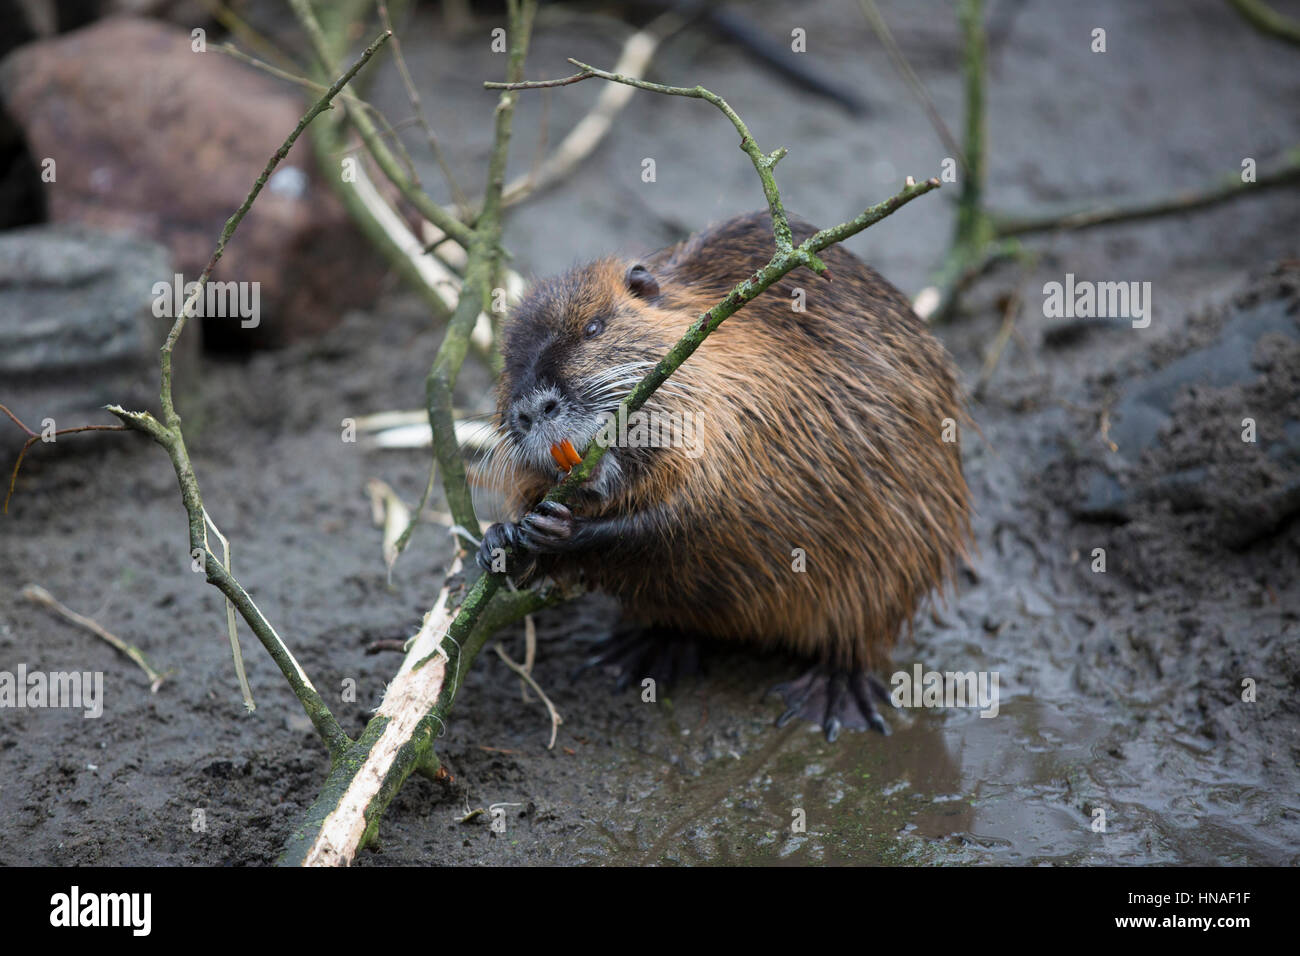 Beaver Chewing Tree - Bing images